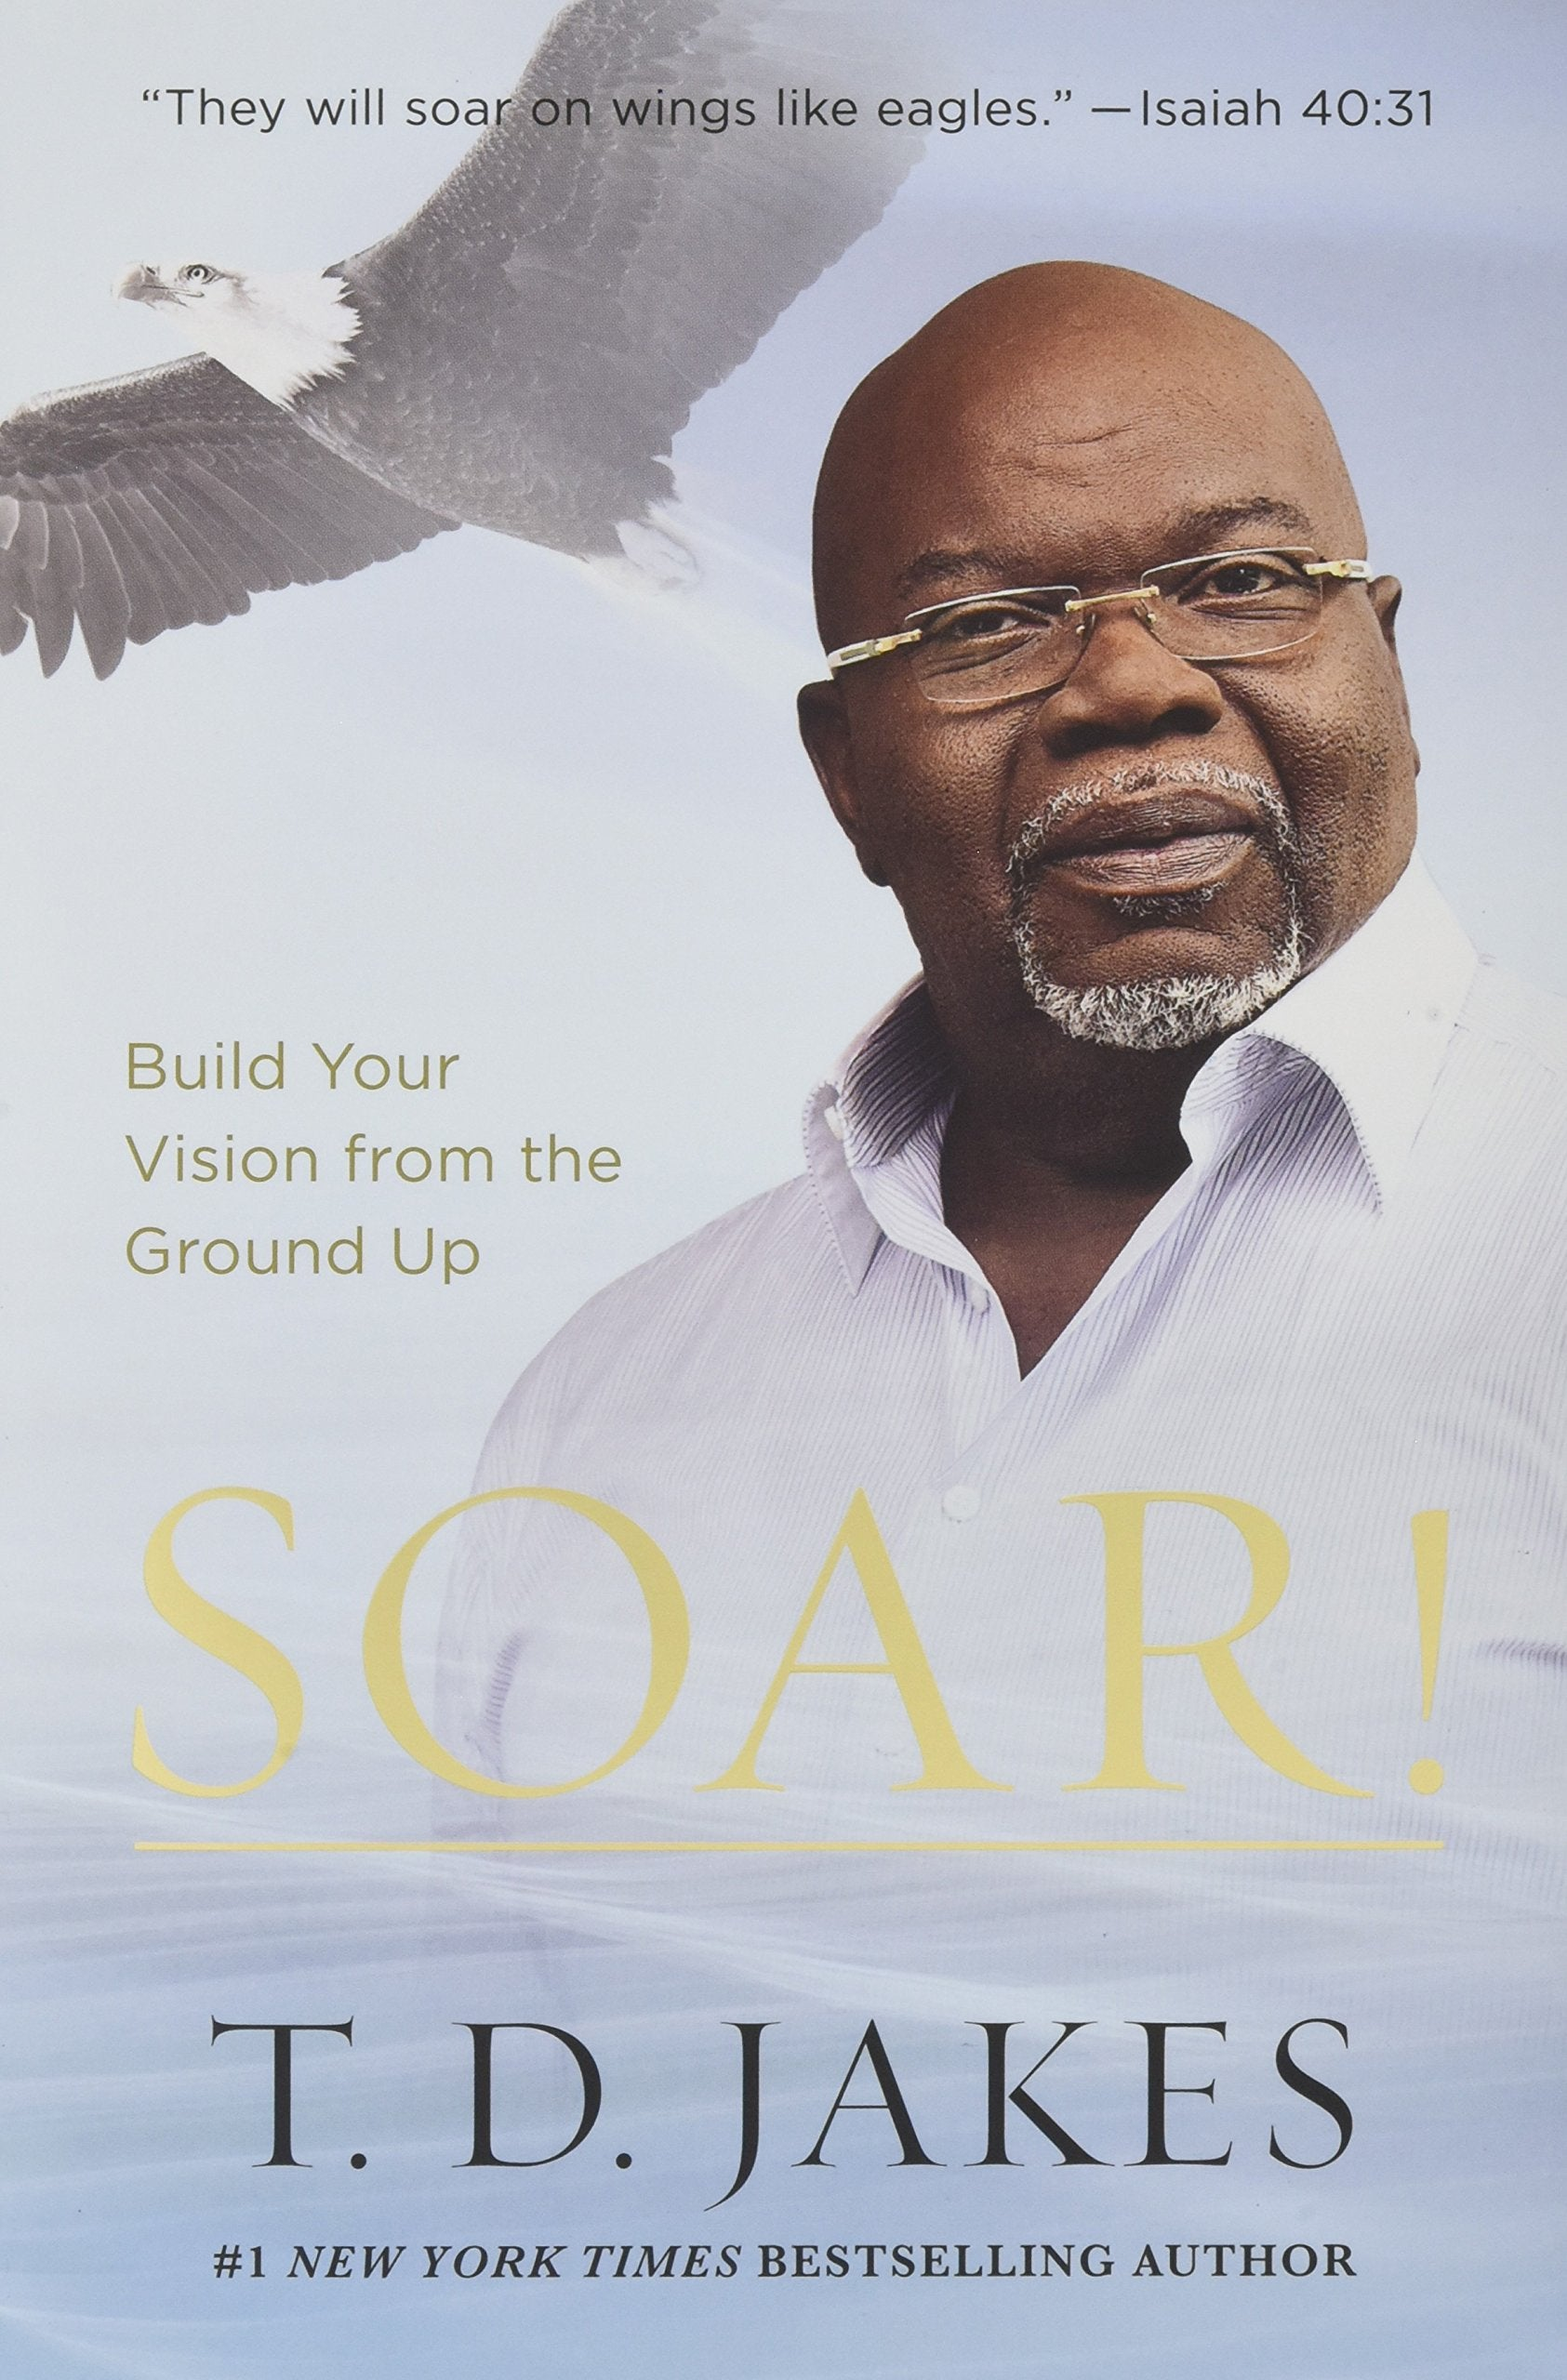 ROCKONLINE | New Creation Church | NCC | Joseph Prince | Soar!: Build Your Vision from the Ground Up | ROCK Bookshop | ROCK Bookstore | Star Vista | T.D. Jakes | Personal Growth | Finances | Work Career | Business | Free delivery for Singapore Orders above $50.